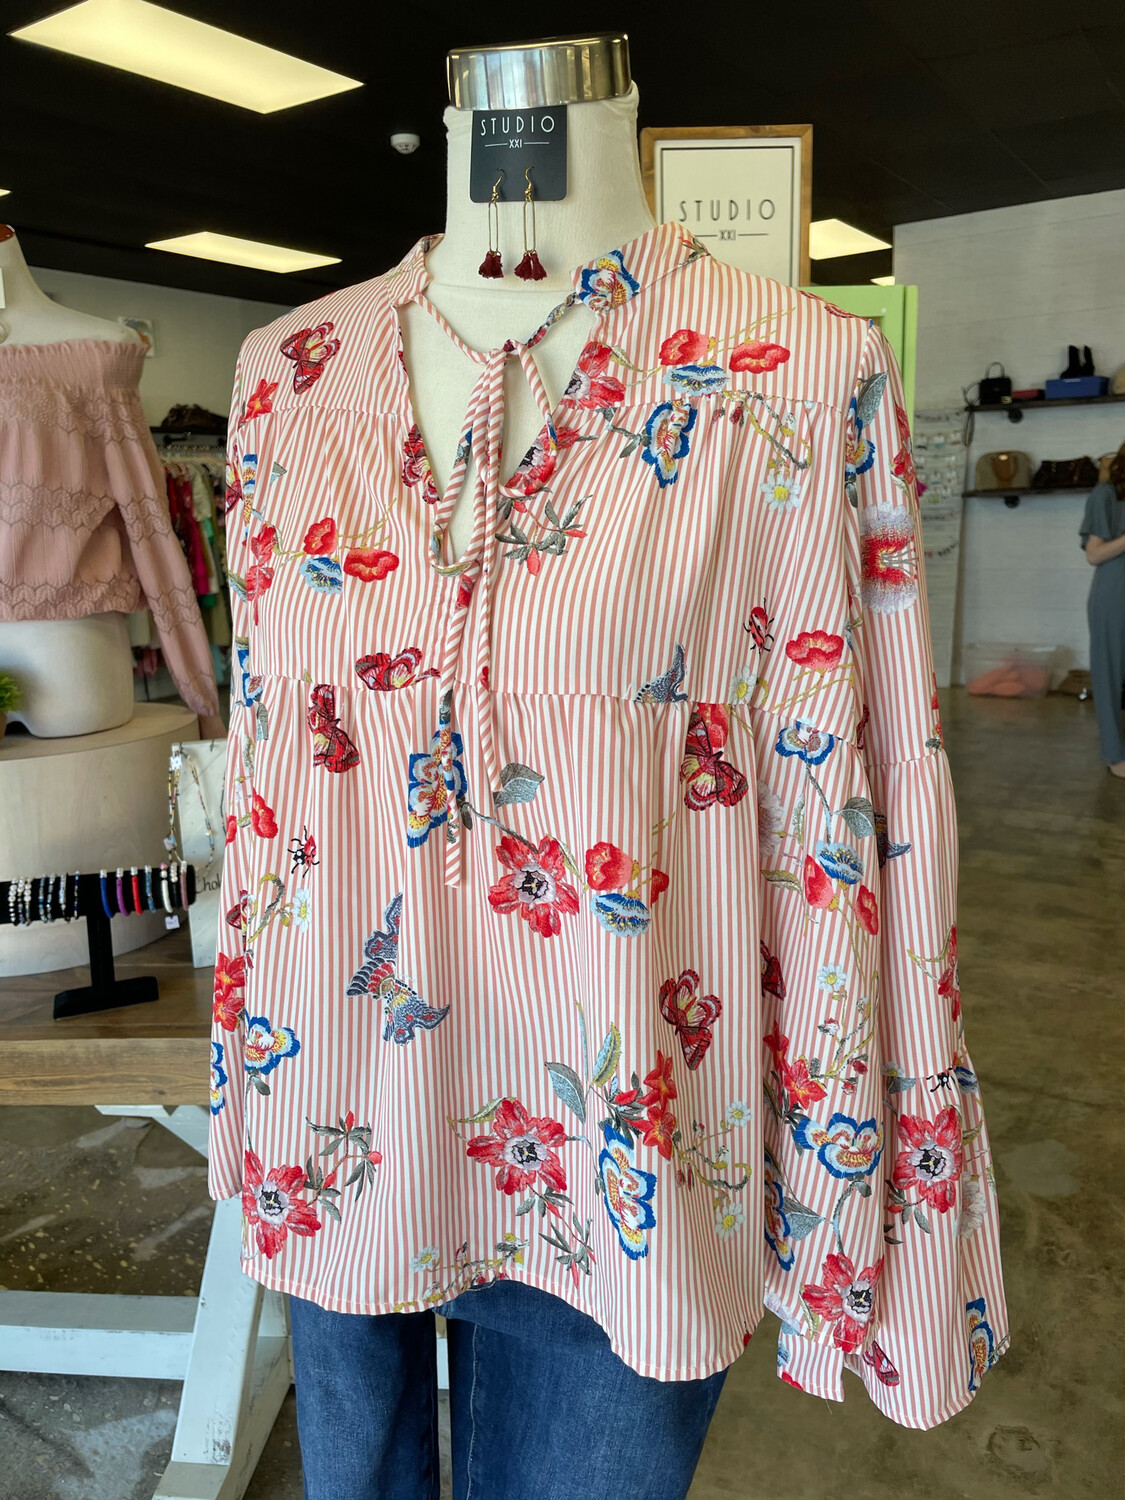 Karlie Dusty Rose Striped Top w/Butterfly & Floral Print - S